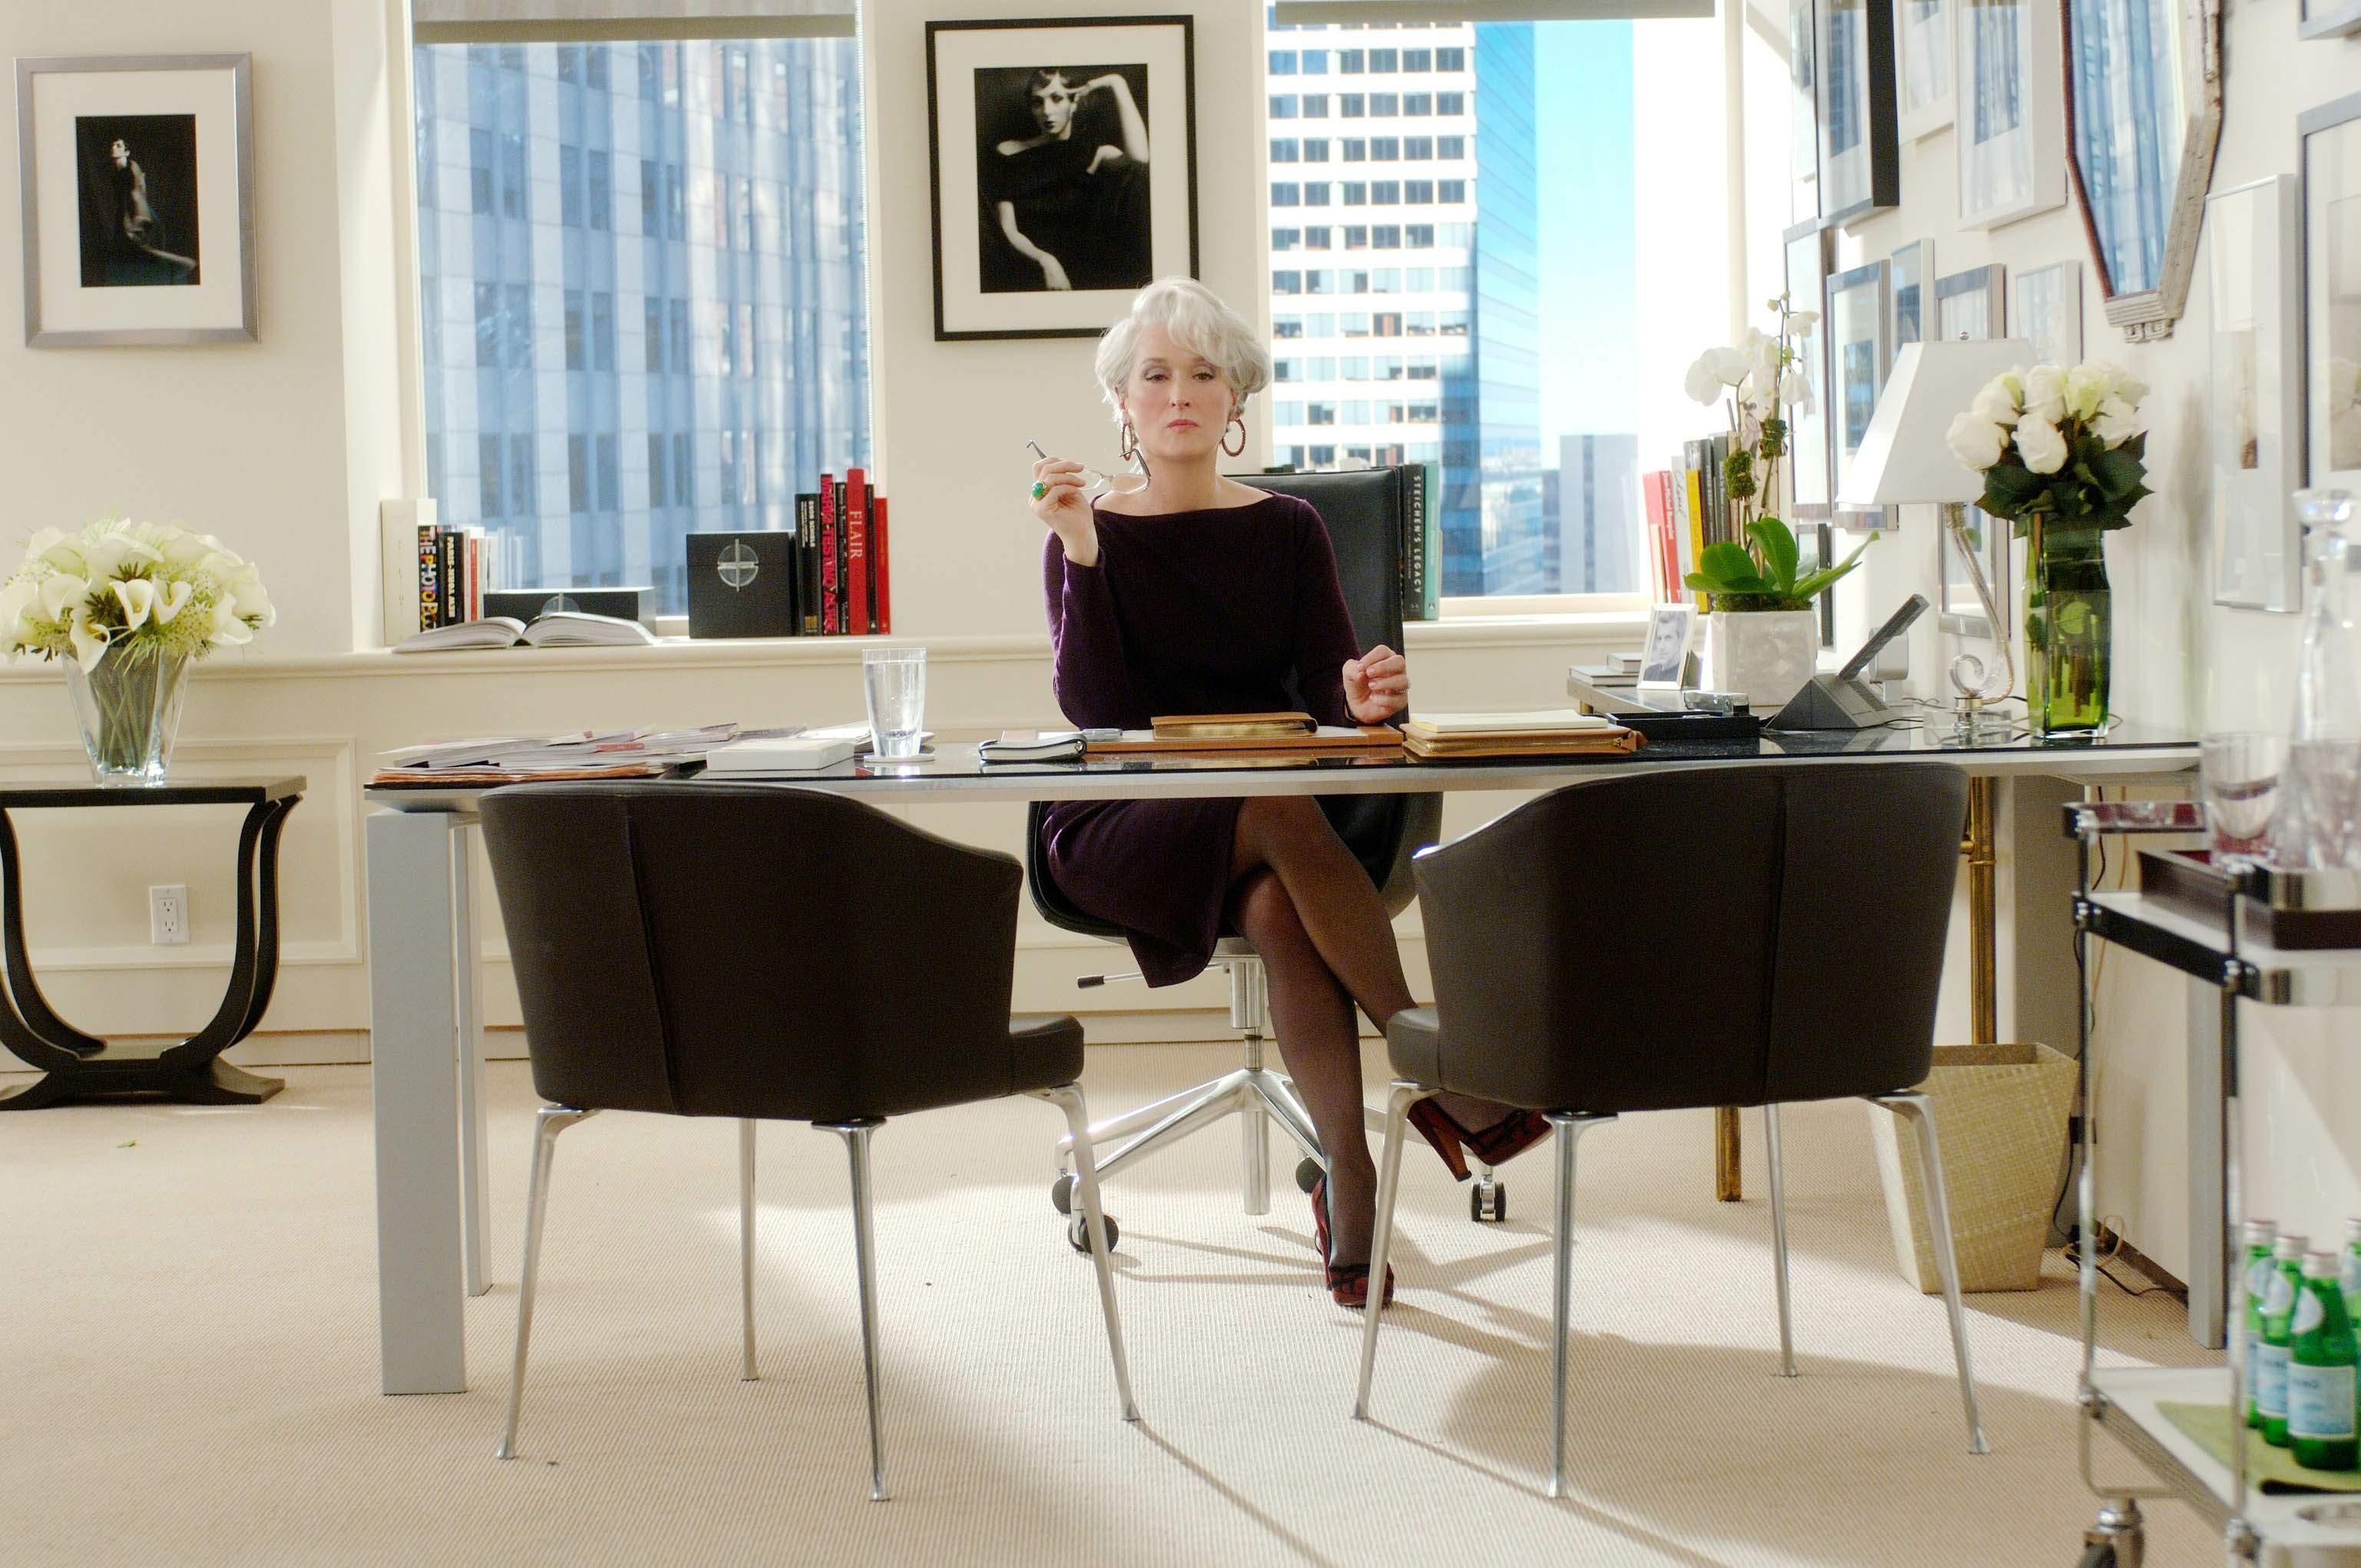 30 Things That Make Your Office Desk Look Sophisticated & Professional